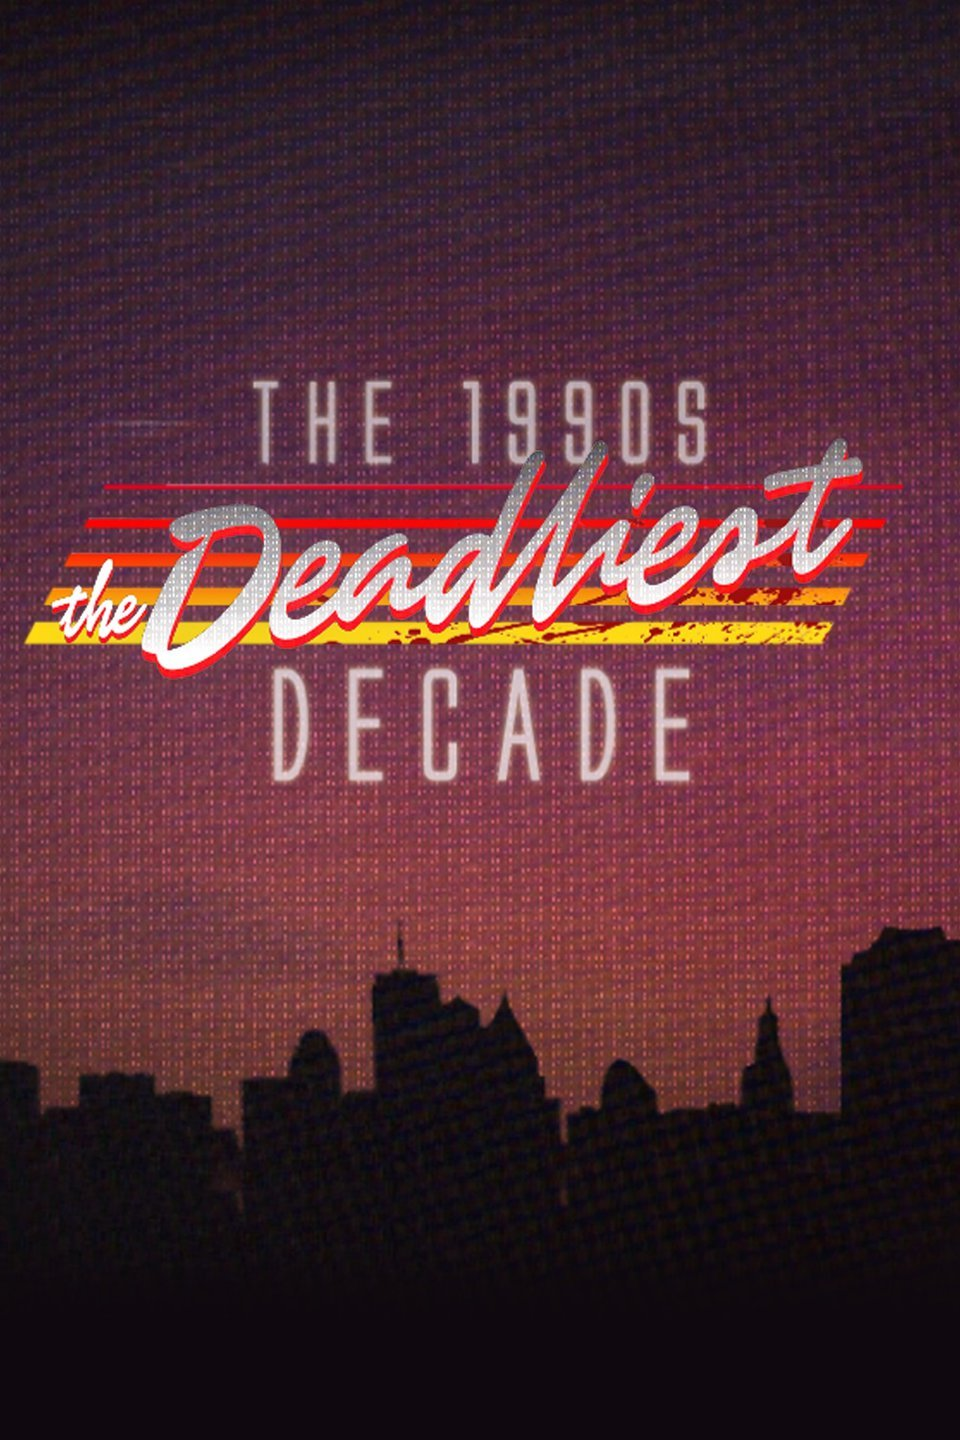 Watch Series The 1990s The Deadliest Decade Season 1